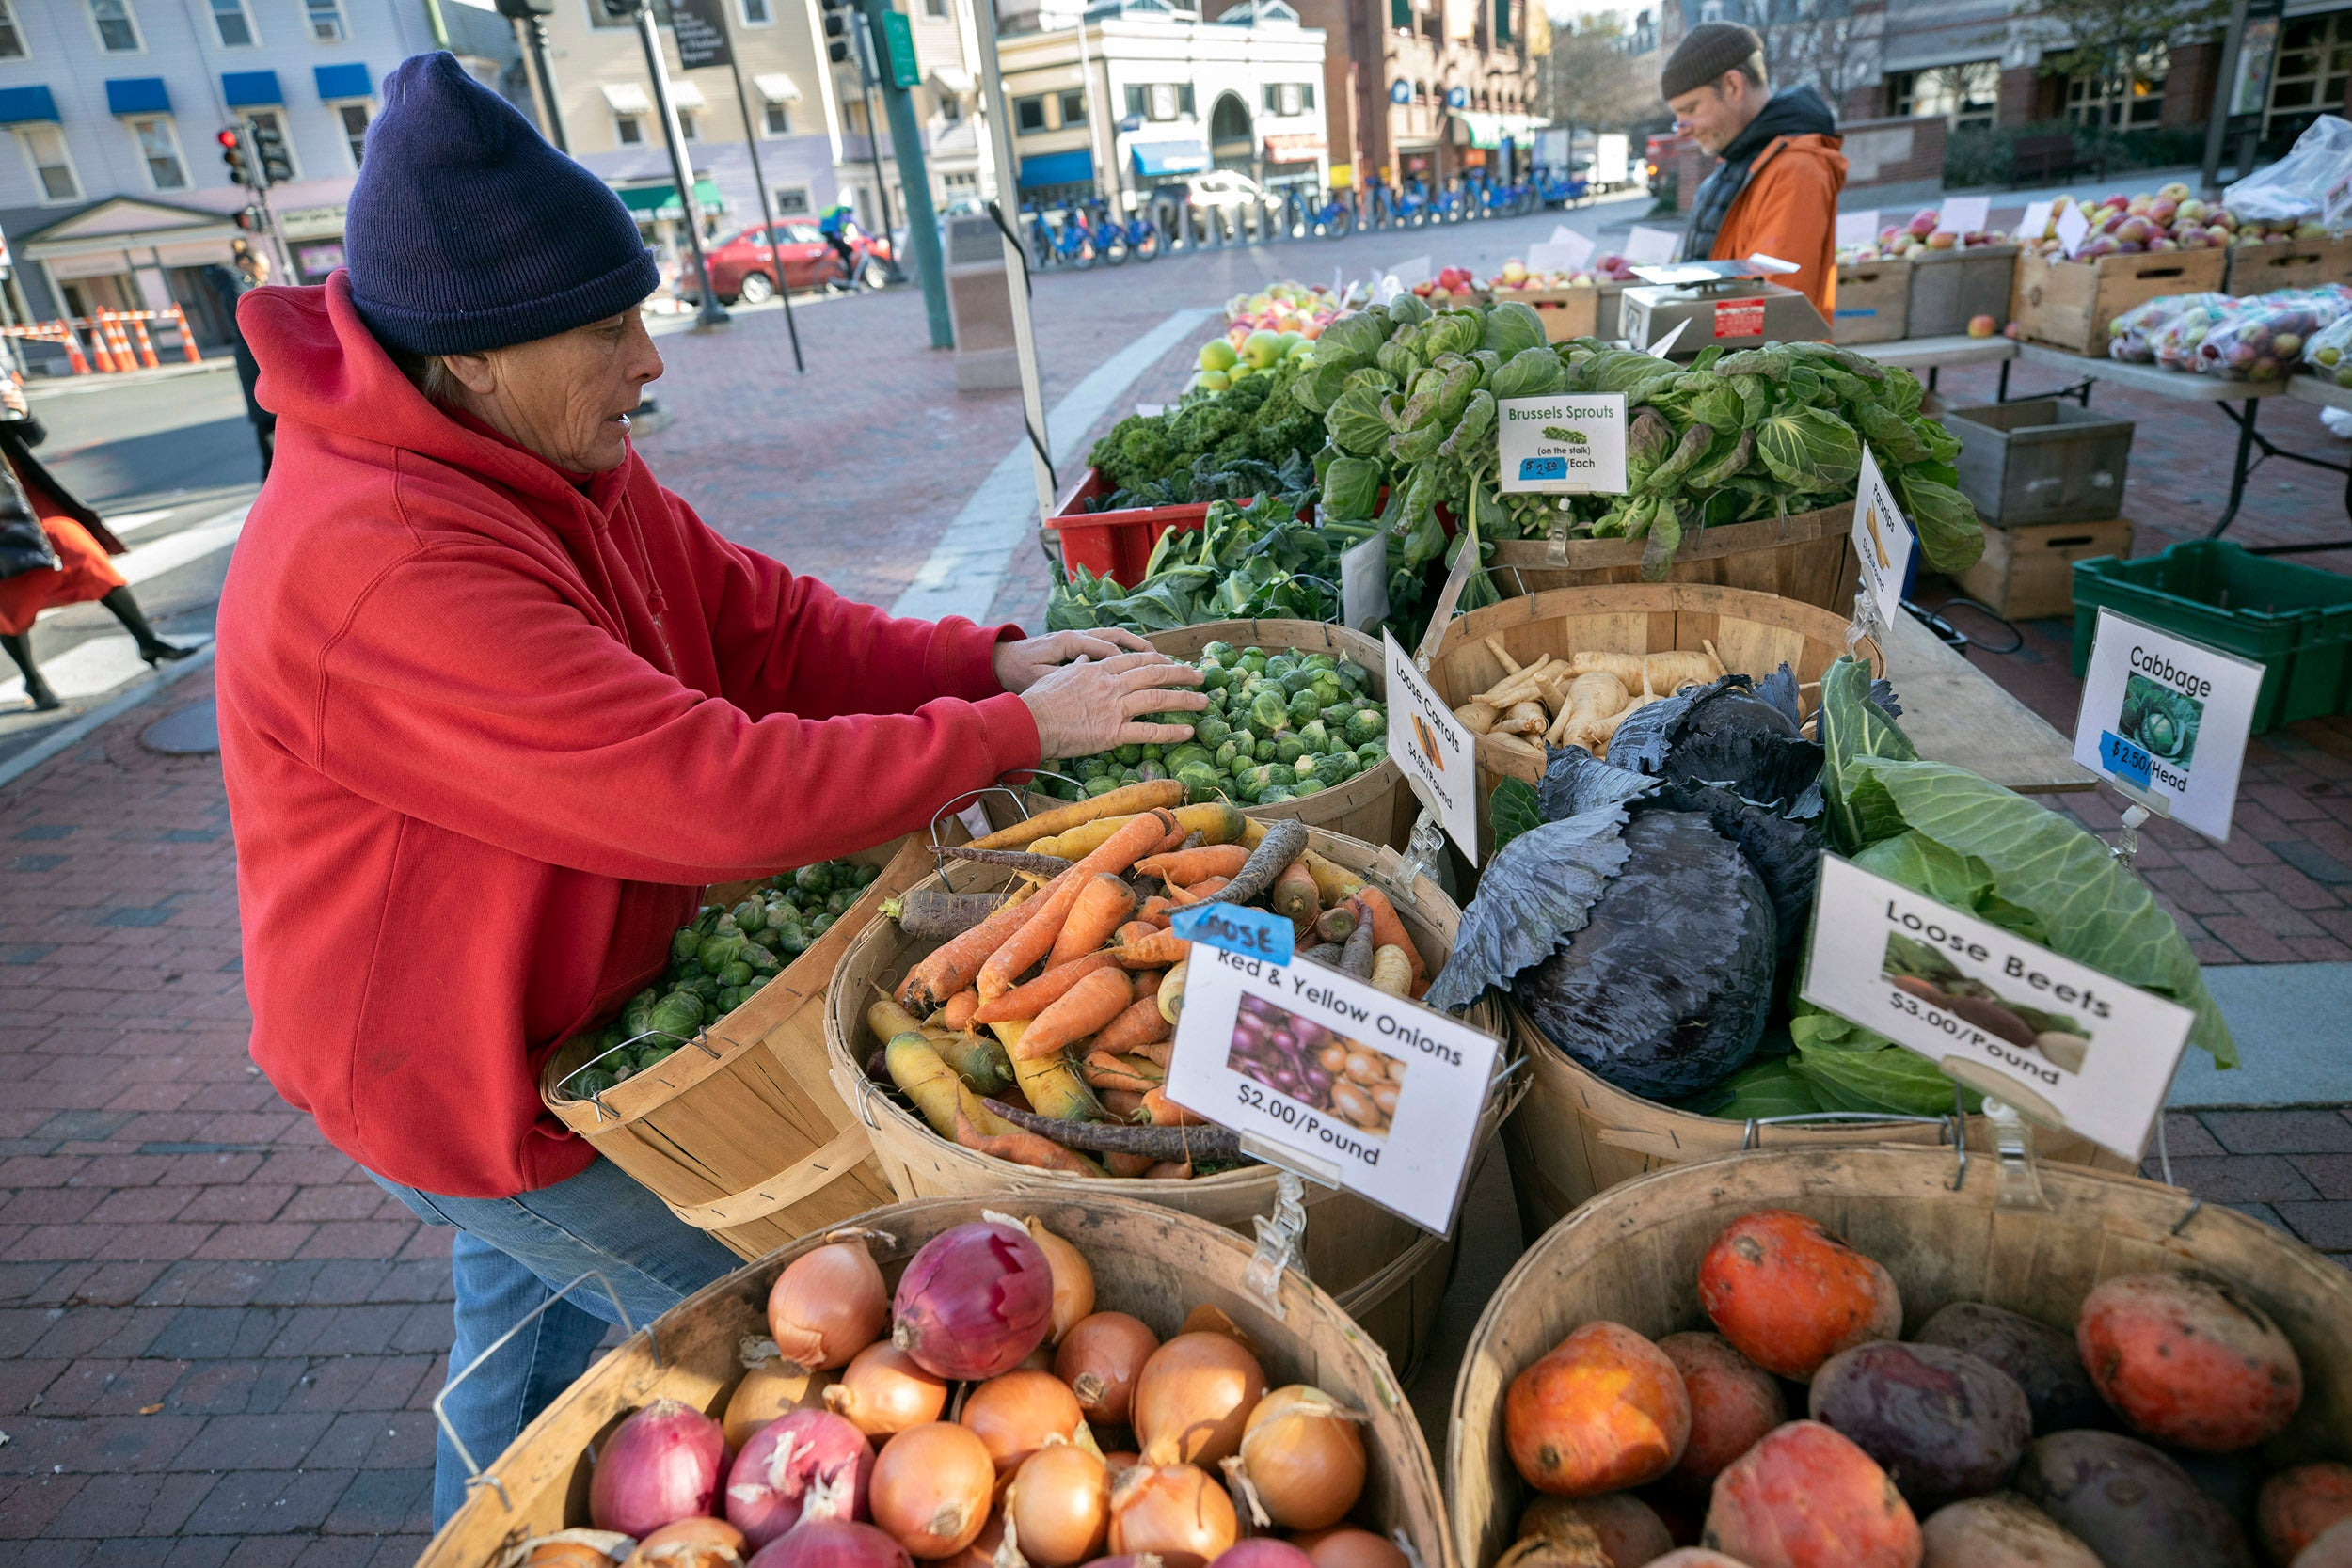 At the farmer's market, Wendy Long Land sets up Kimball's Fruit Farm Stand outside Harvard Kennedy School.